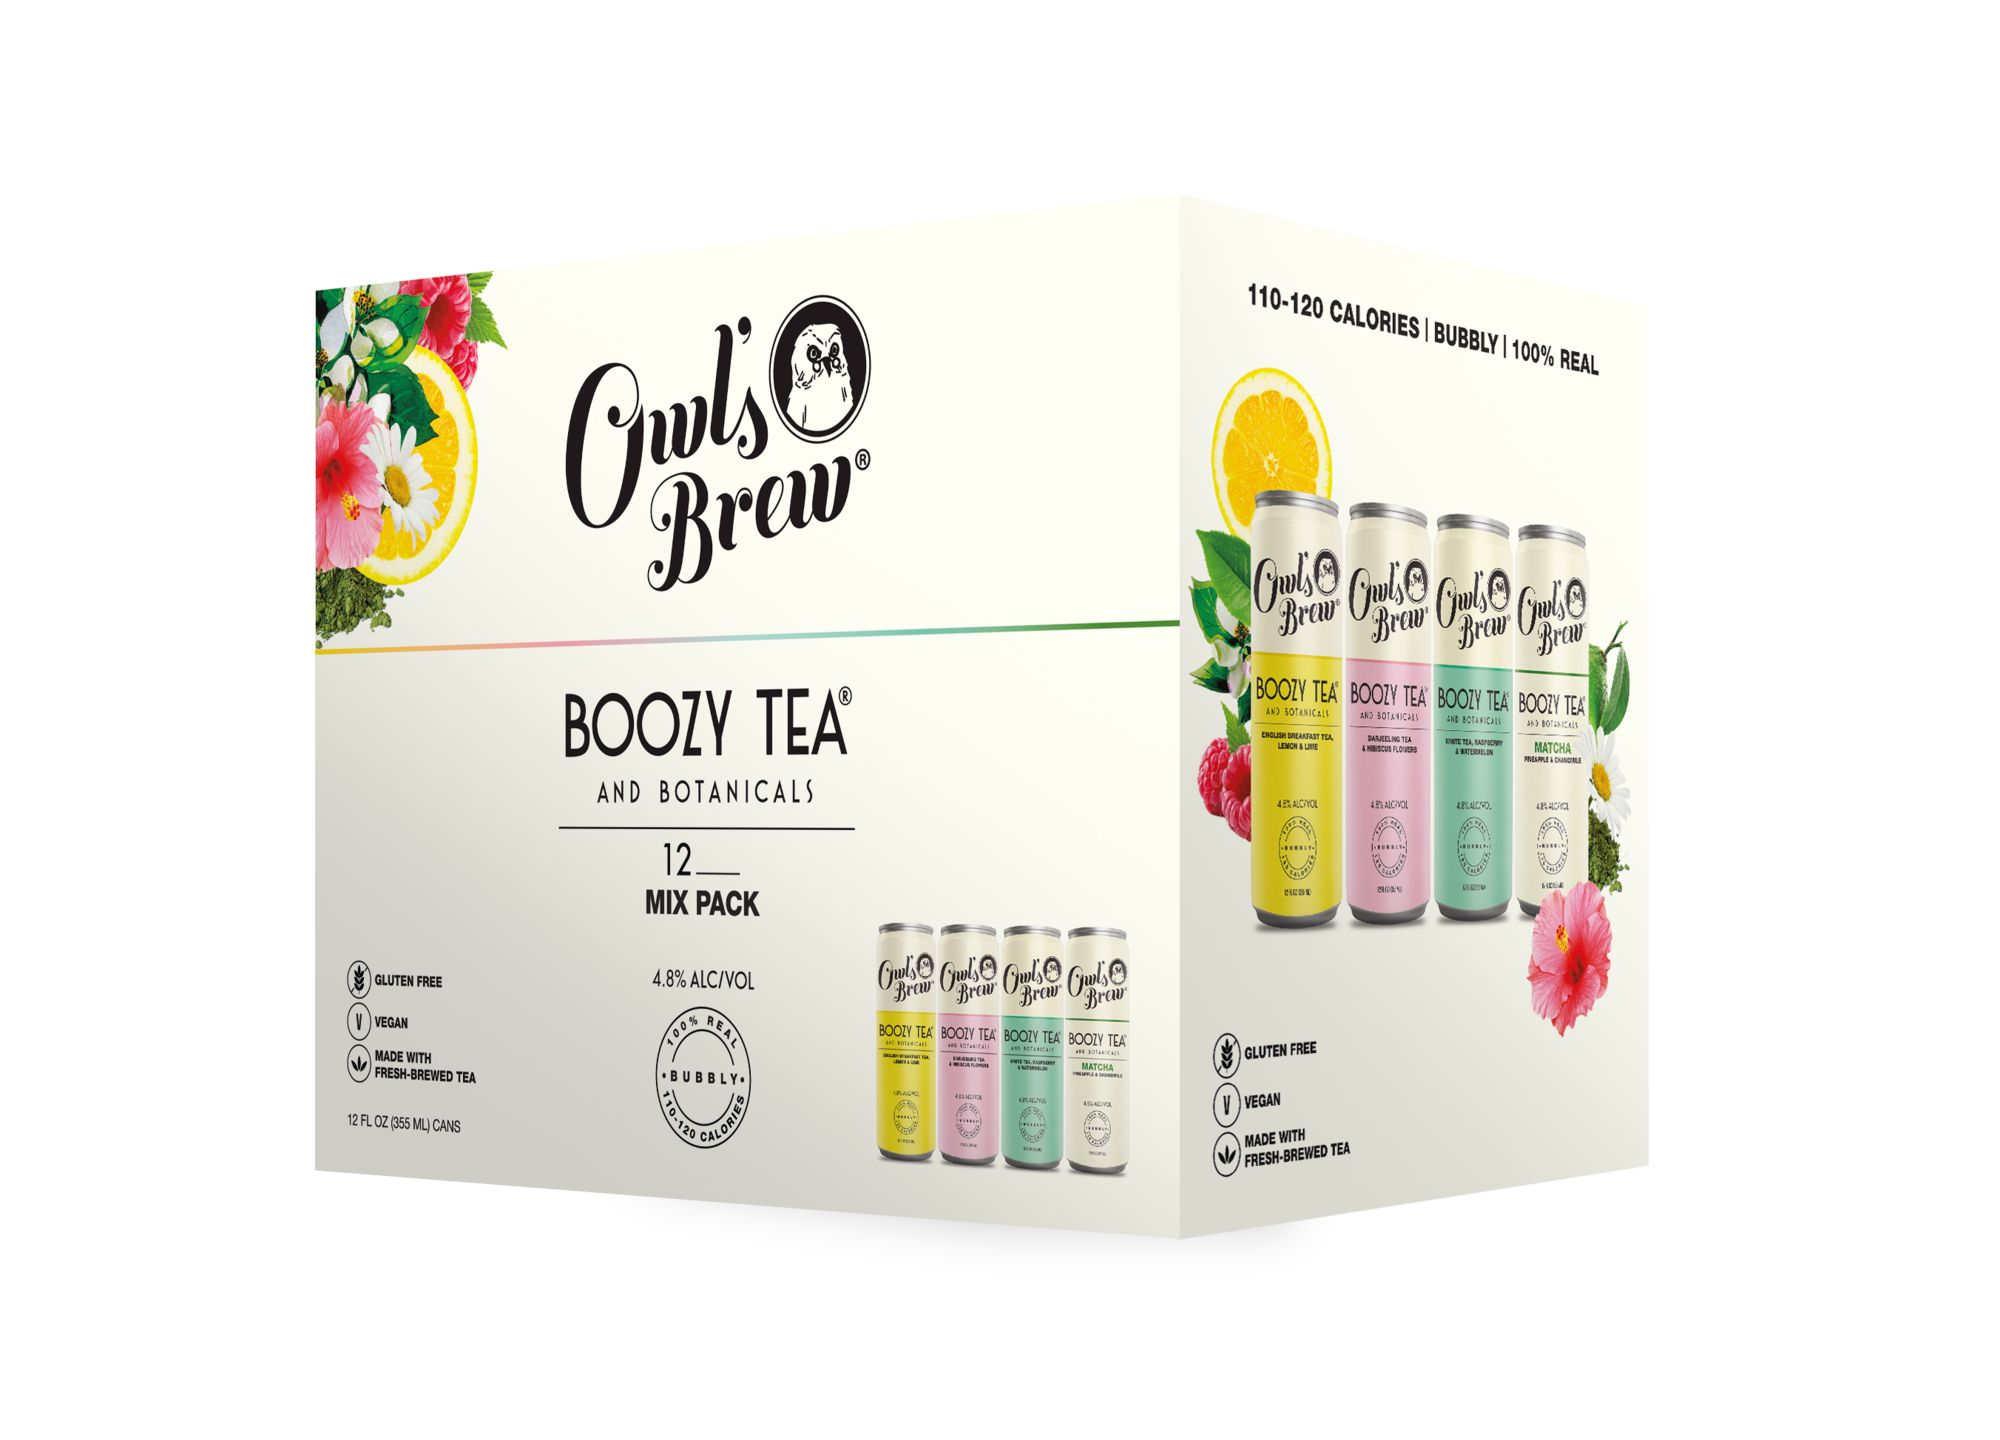 Owls Brew Boozy Tea Variety 6 Pk beer Label Full Size